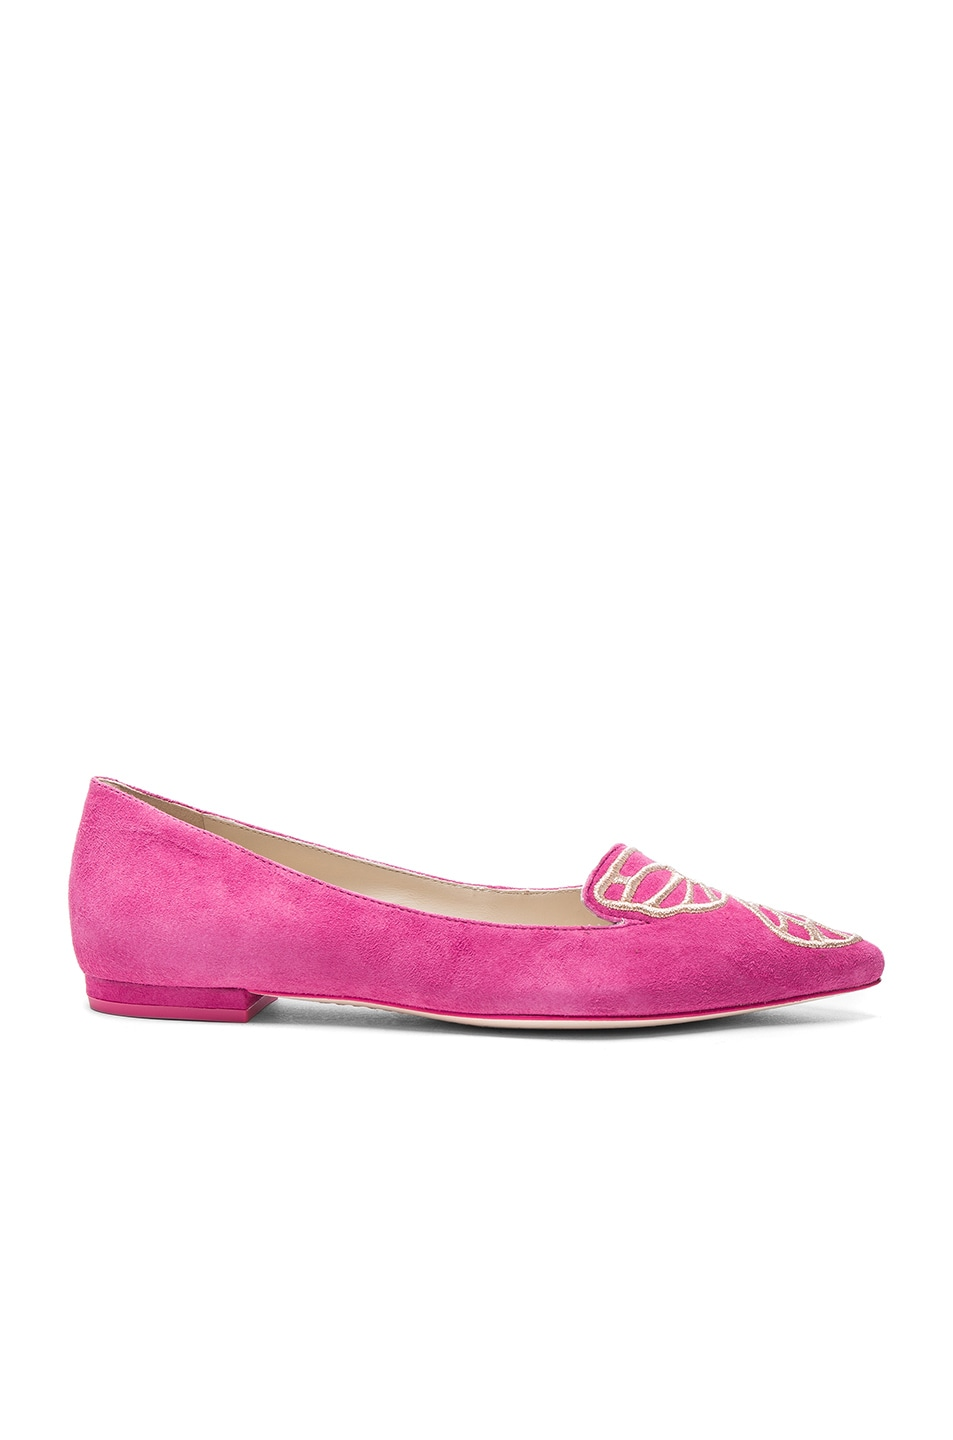 Image 2 of Sophia Webster Suede Bibi Butterfly Flats in Magenta & Rose Gold